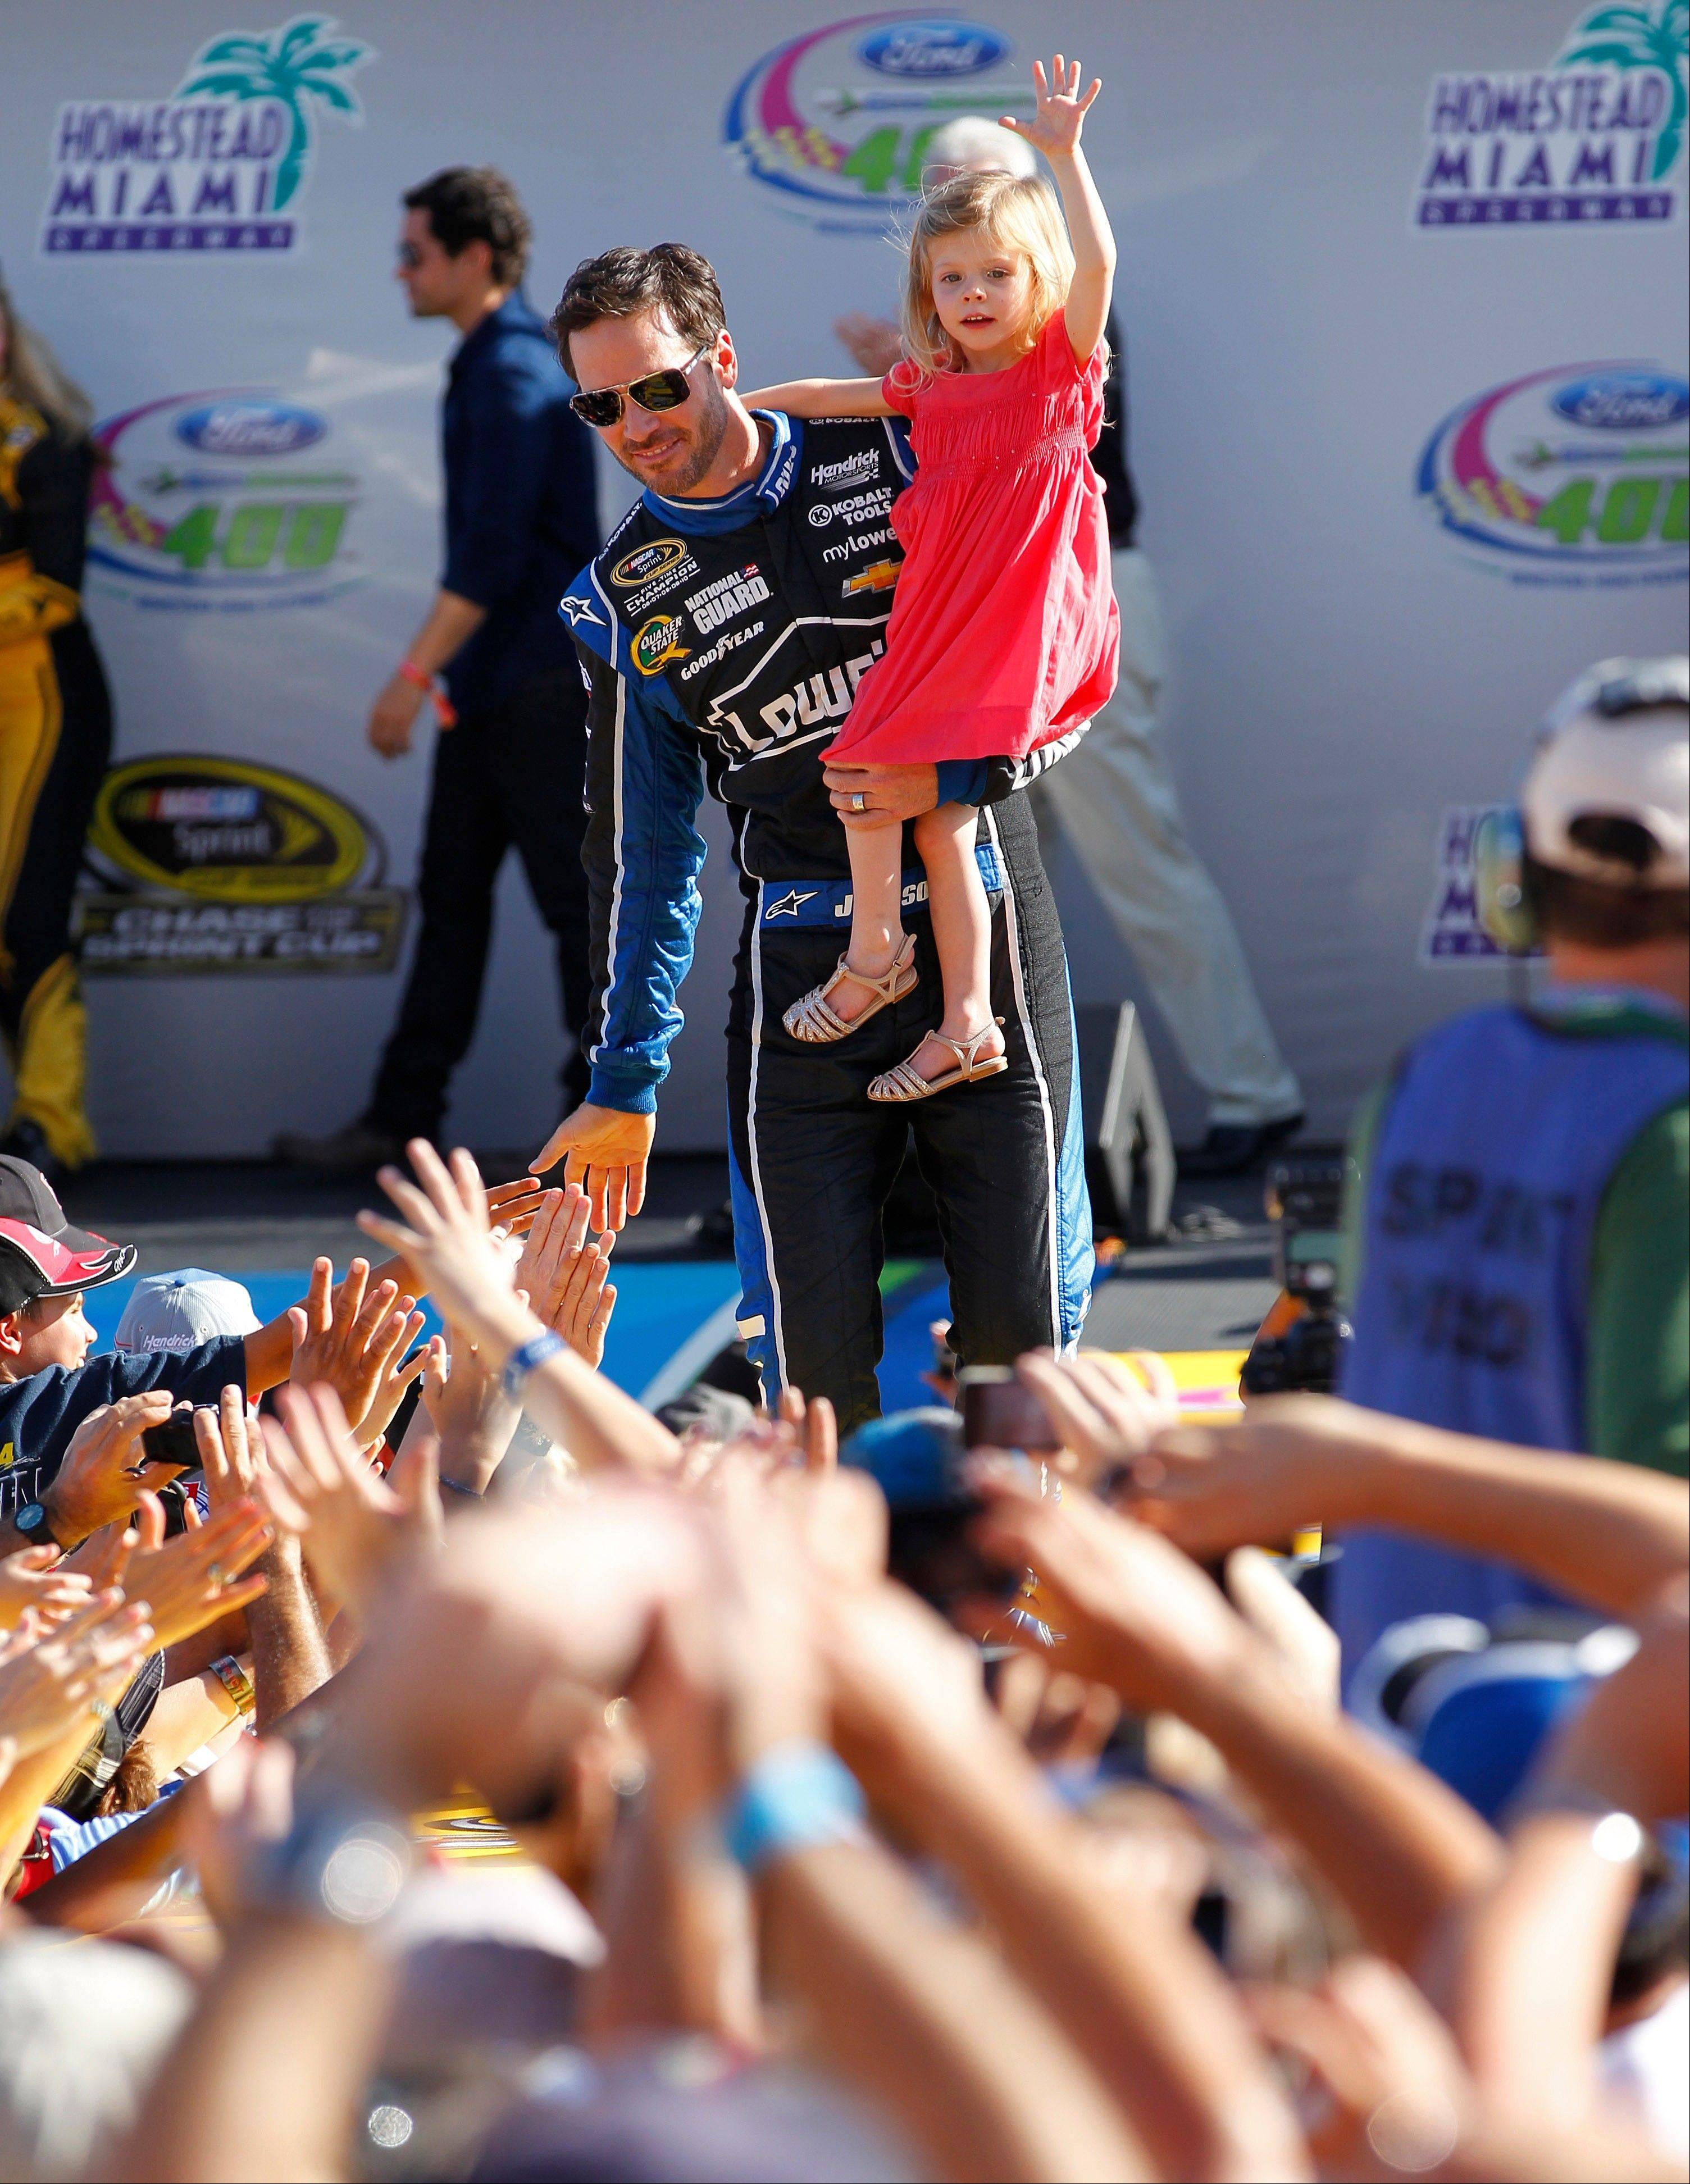 Jimmie Johnson with his daughter, Genevieve, greet fans during driver introductions before the NASCAR Sprint Cub Series auto race in Homestead, Fla., Sunday, Nov. 17, 2013.